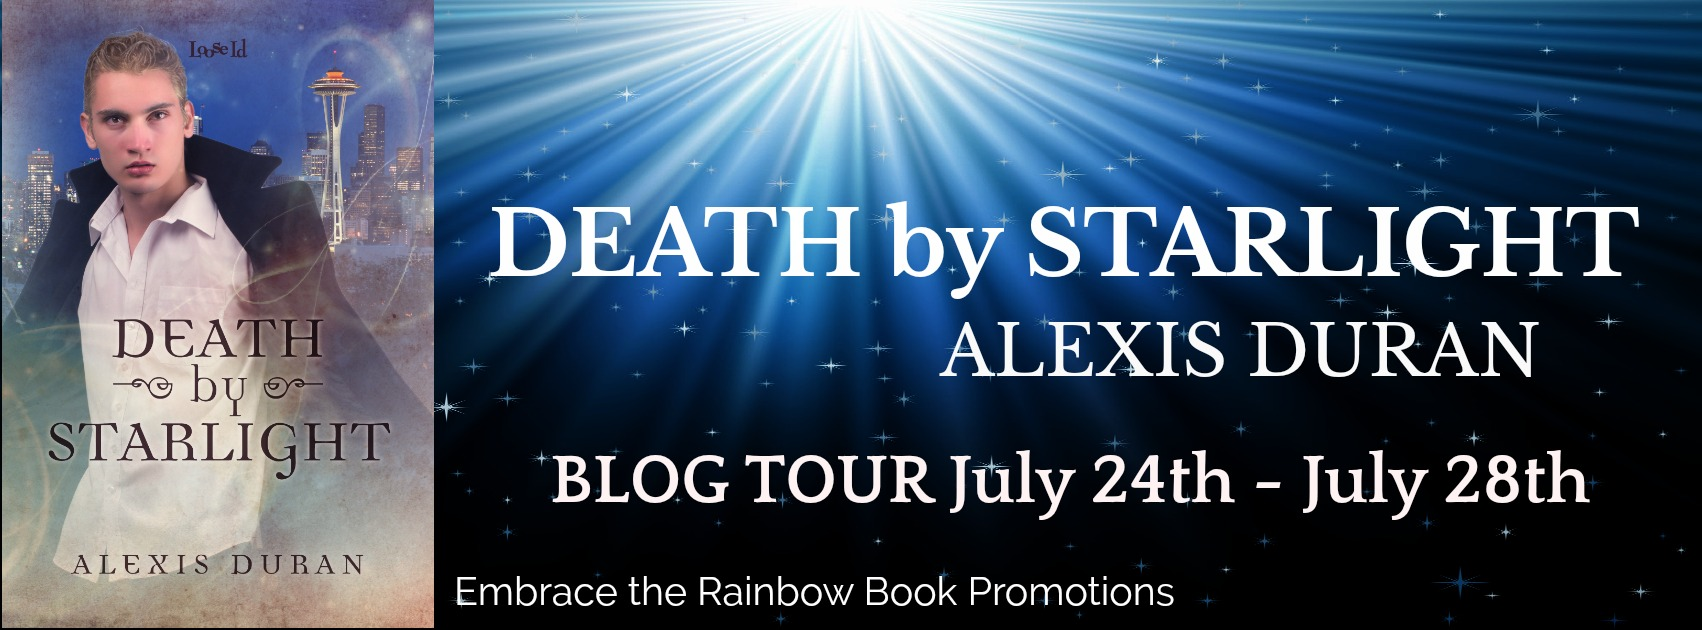 Blog Tour: Guestpost, Excerpt & Giveaway -- Alexis Duran - Death by Starlight